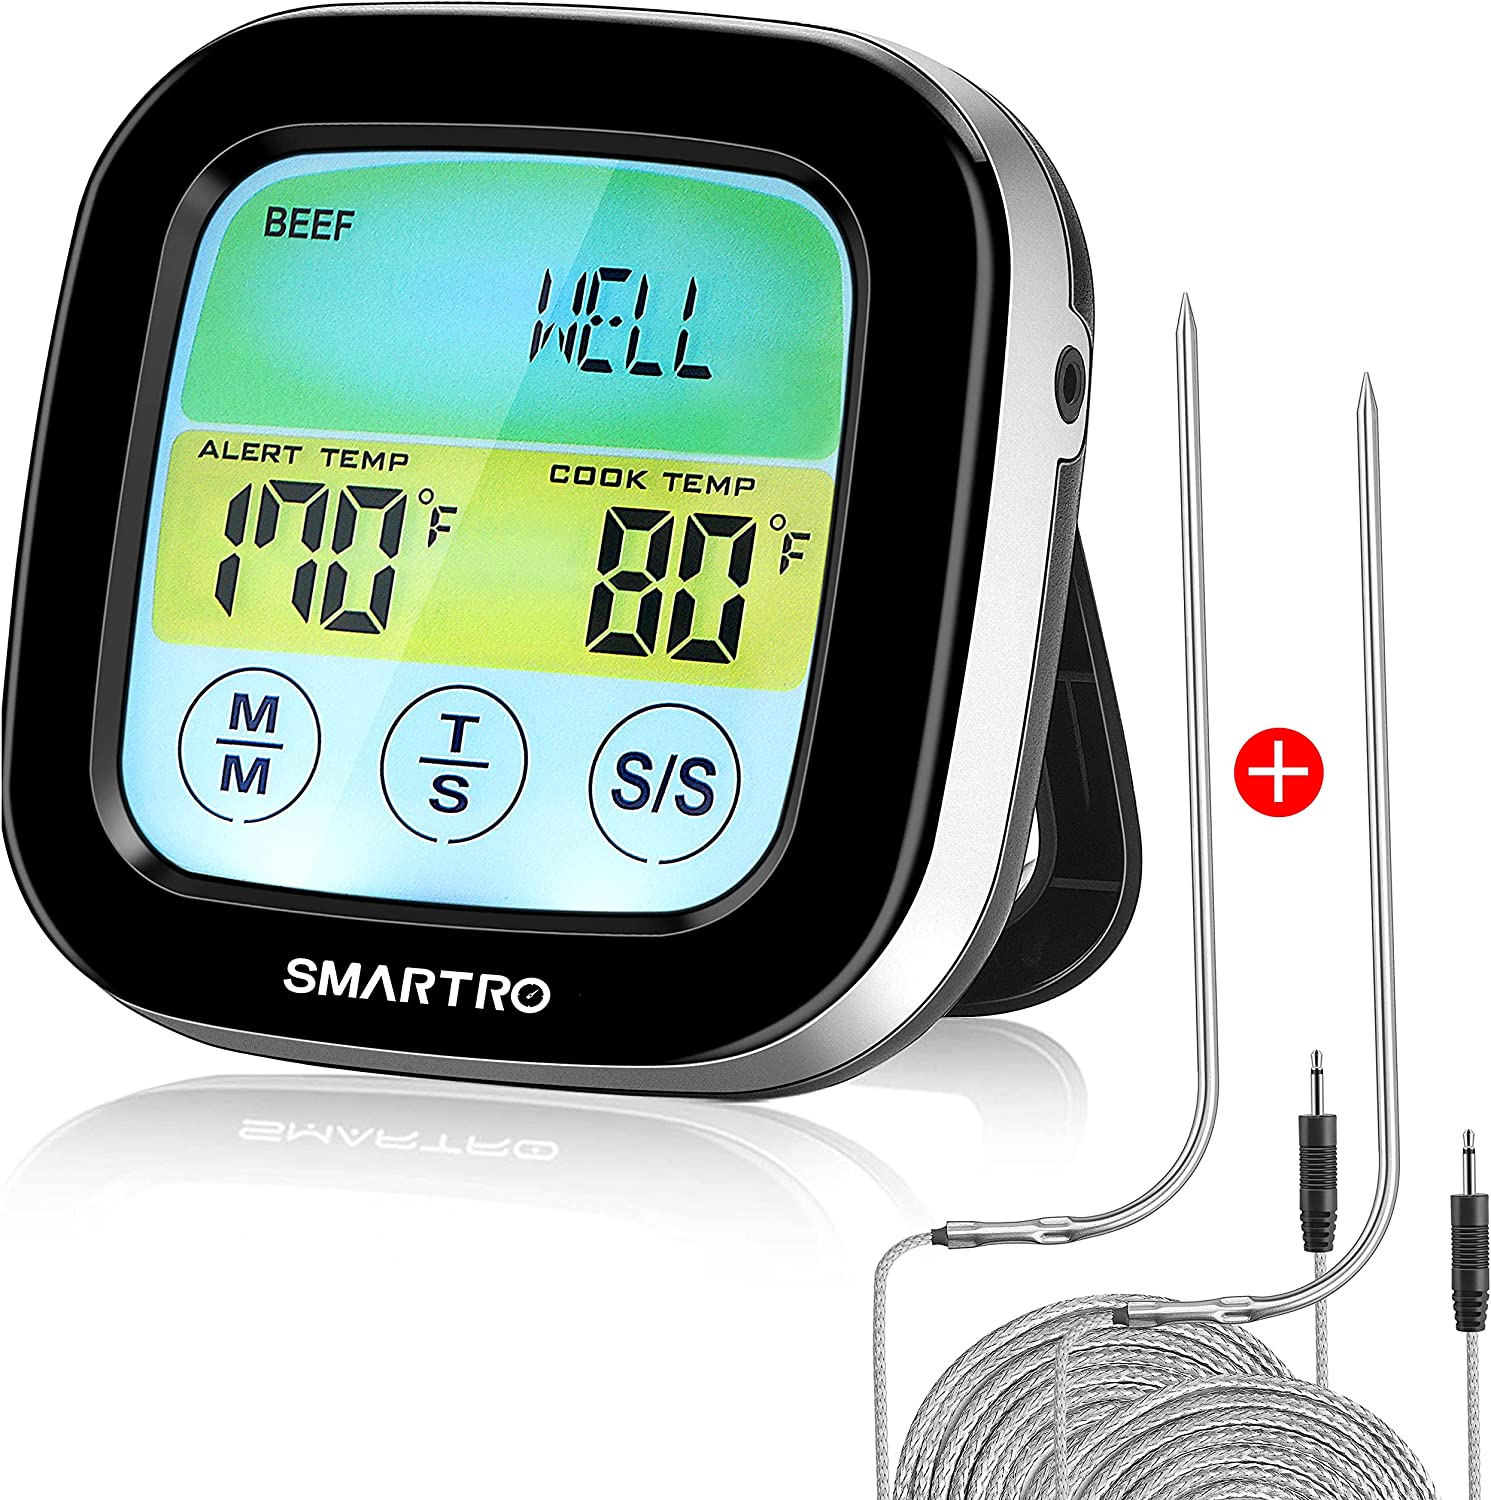 SMARTRO ST59 Genuine Free Shipping Digital Meat Thermometer Grill Ranking TOP2 BBQ Oven for Cooking